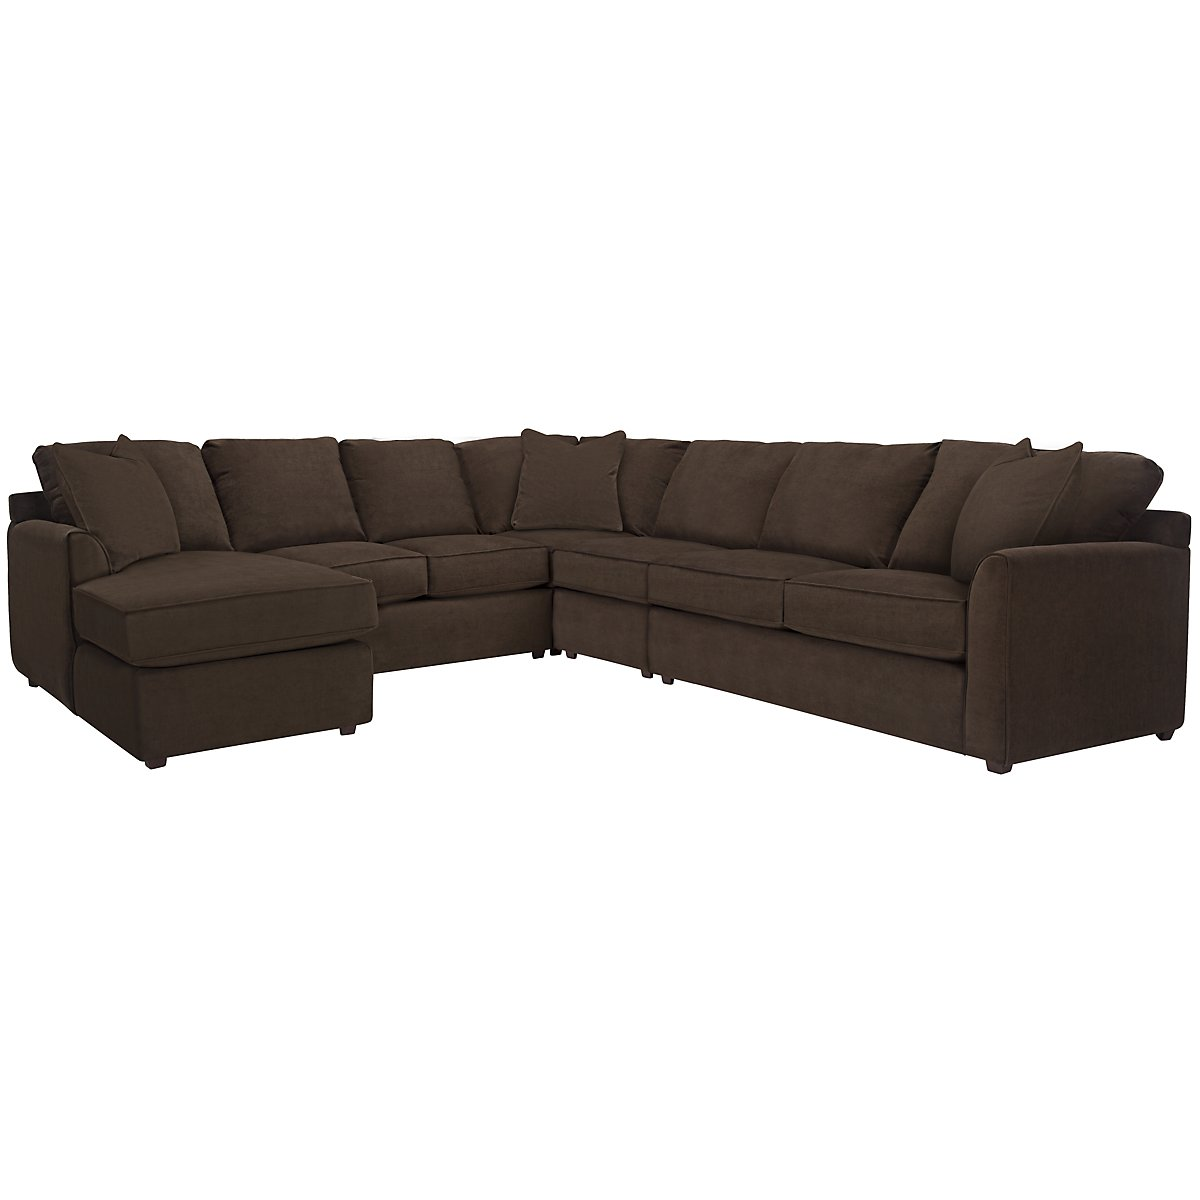 Express3 Dark Brown Microfiber Large Left Chaise Sectional